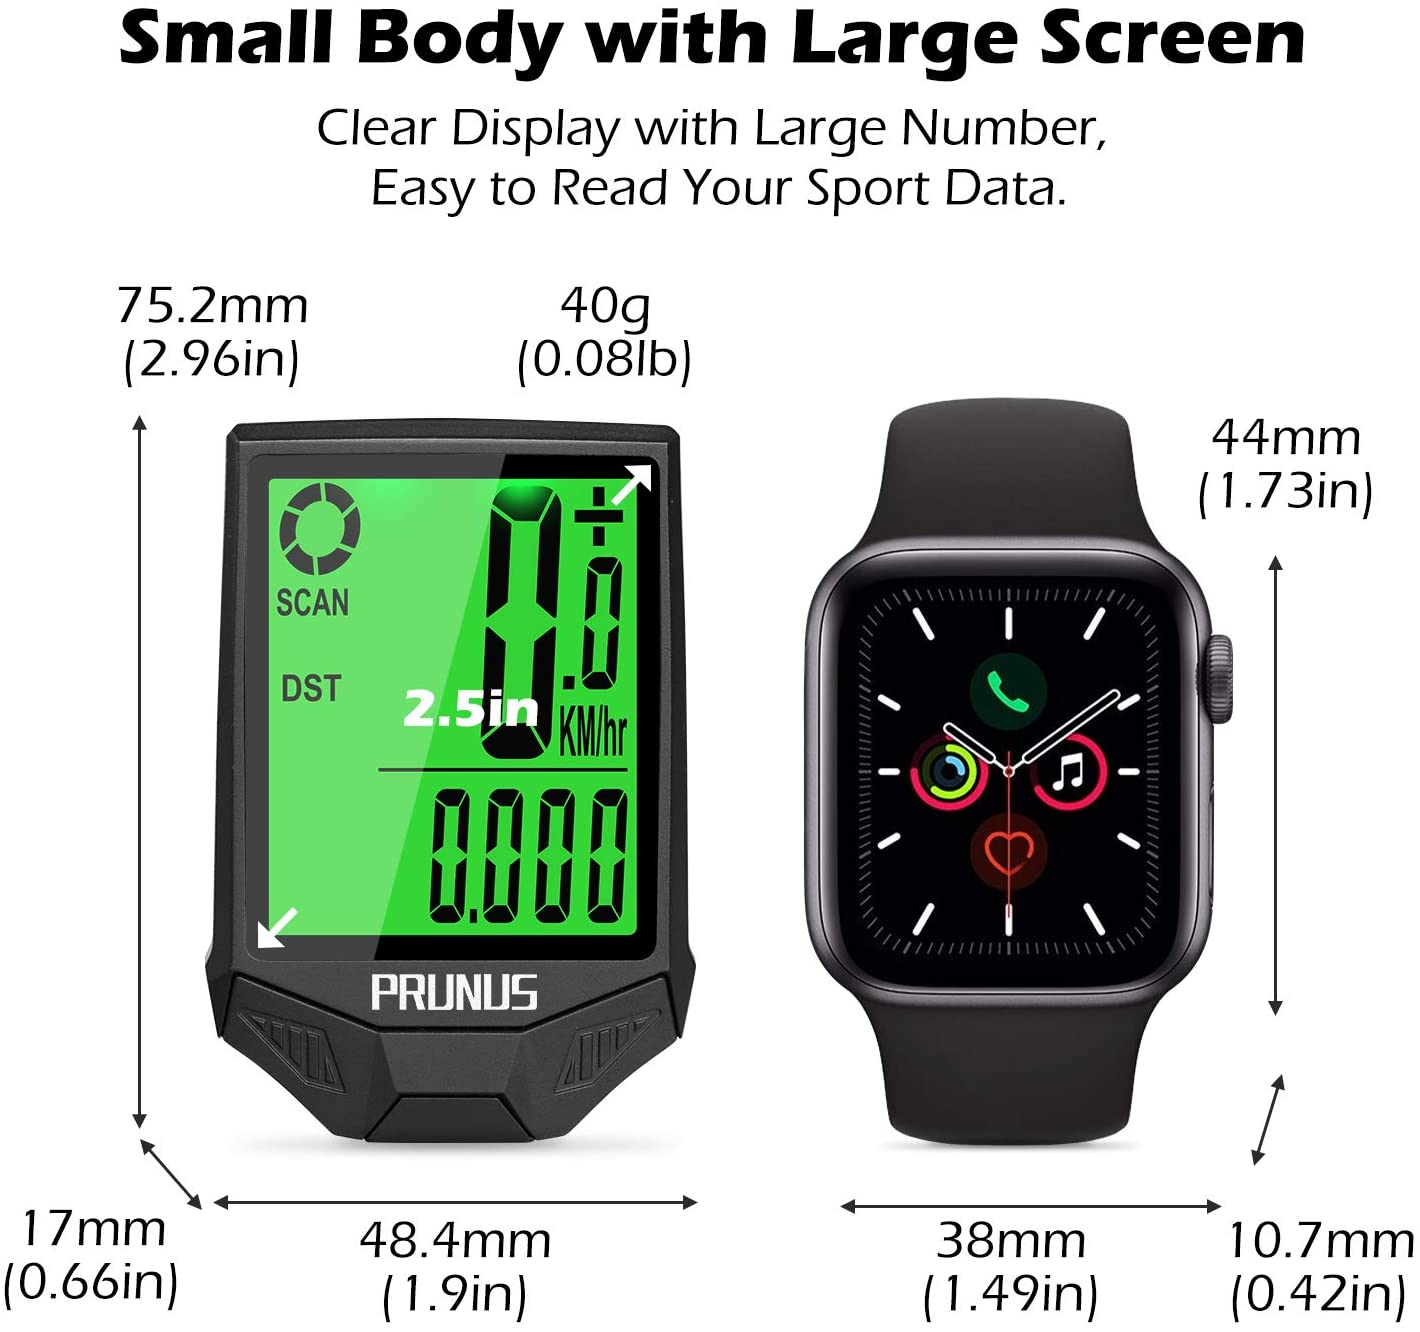 PRUNUS Bike Speedometer and Odometer Wireless Waterproof Bicycle Computer with Digital LCD Display Automatic Wake-up and Calorie Counter for Outdoor MTB Road Cycling and Fitness